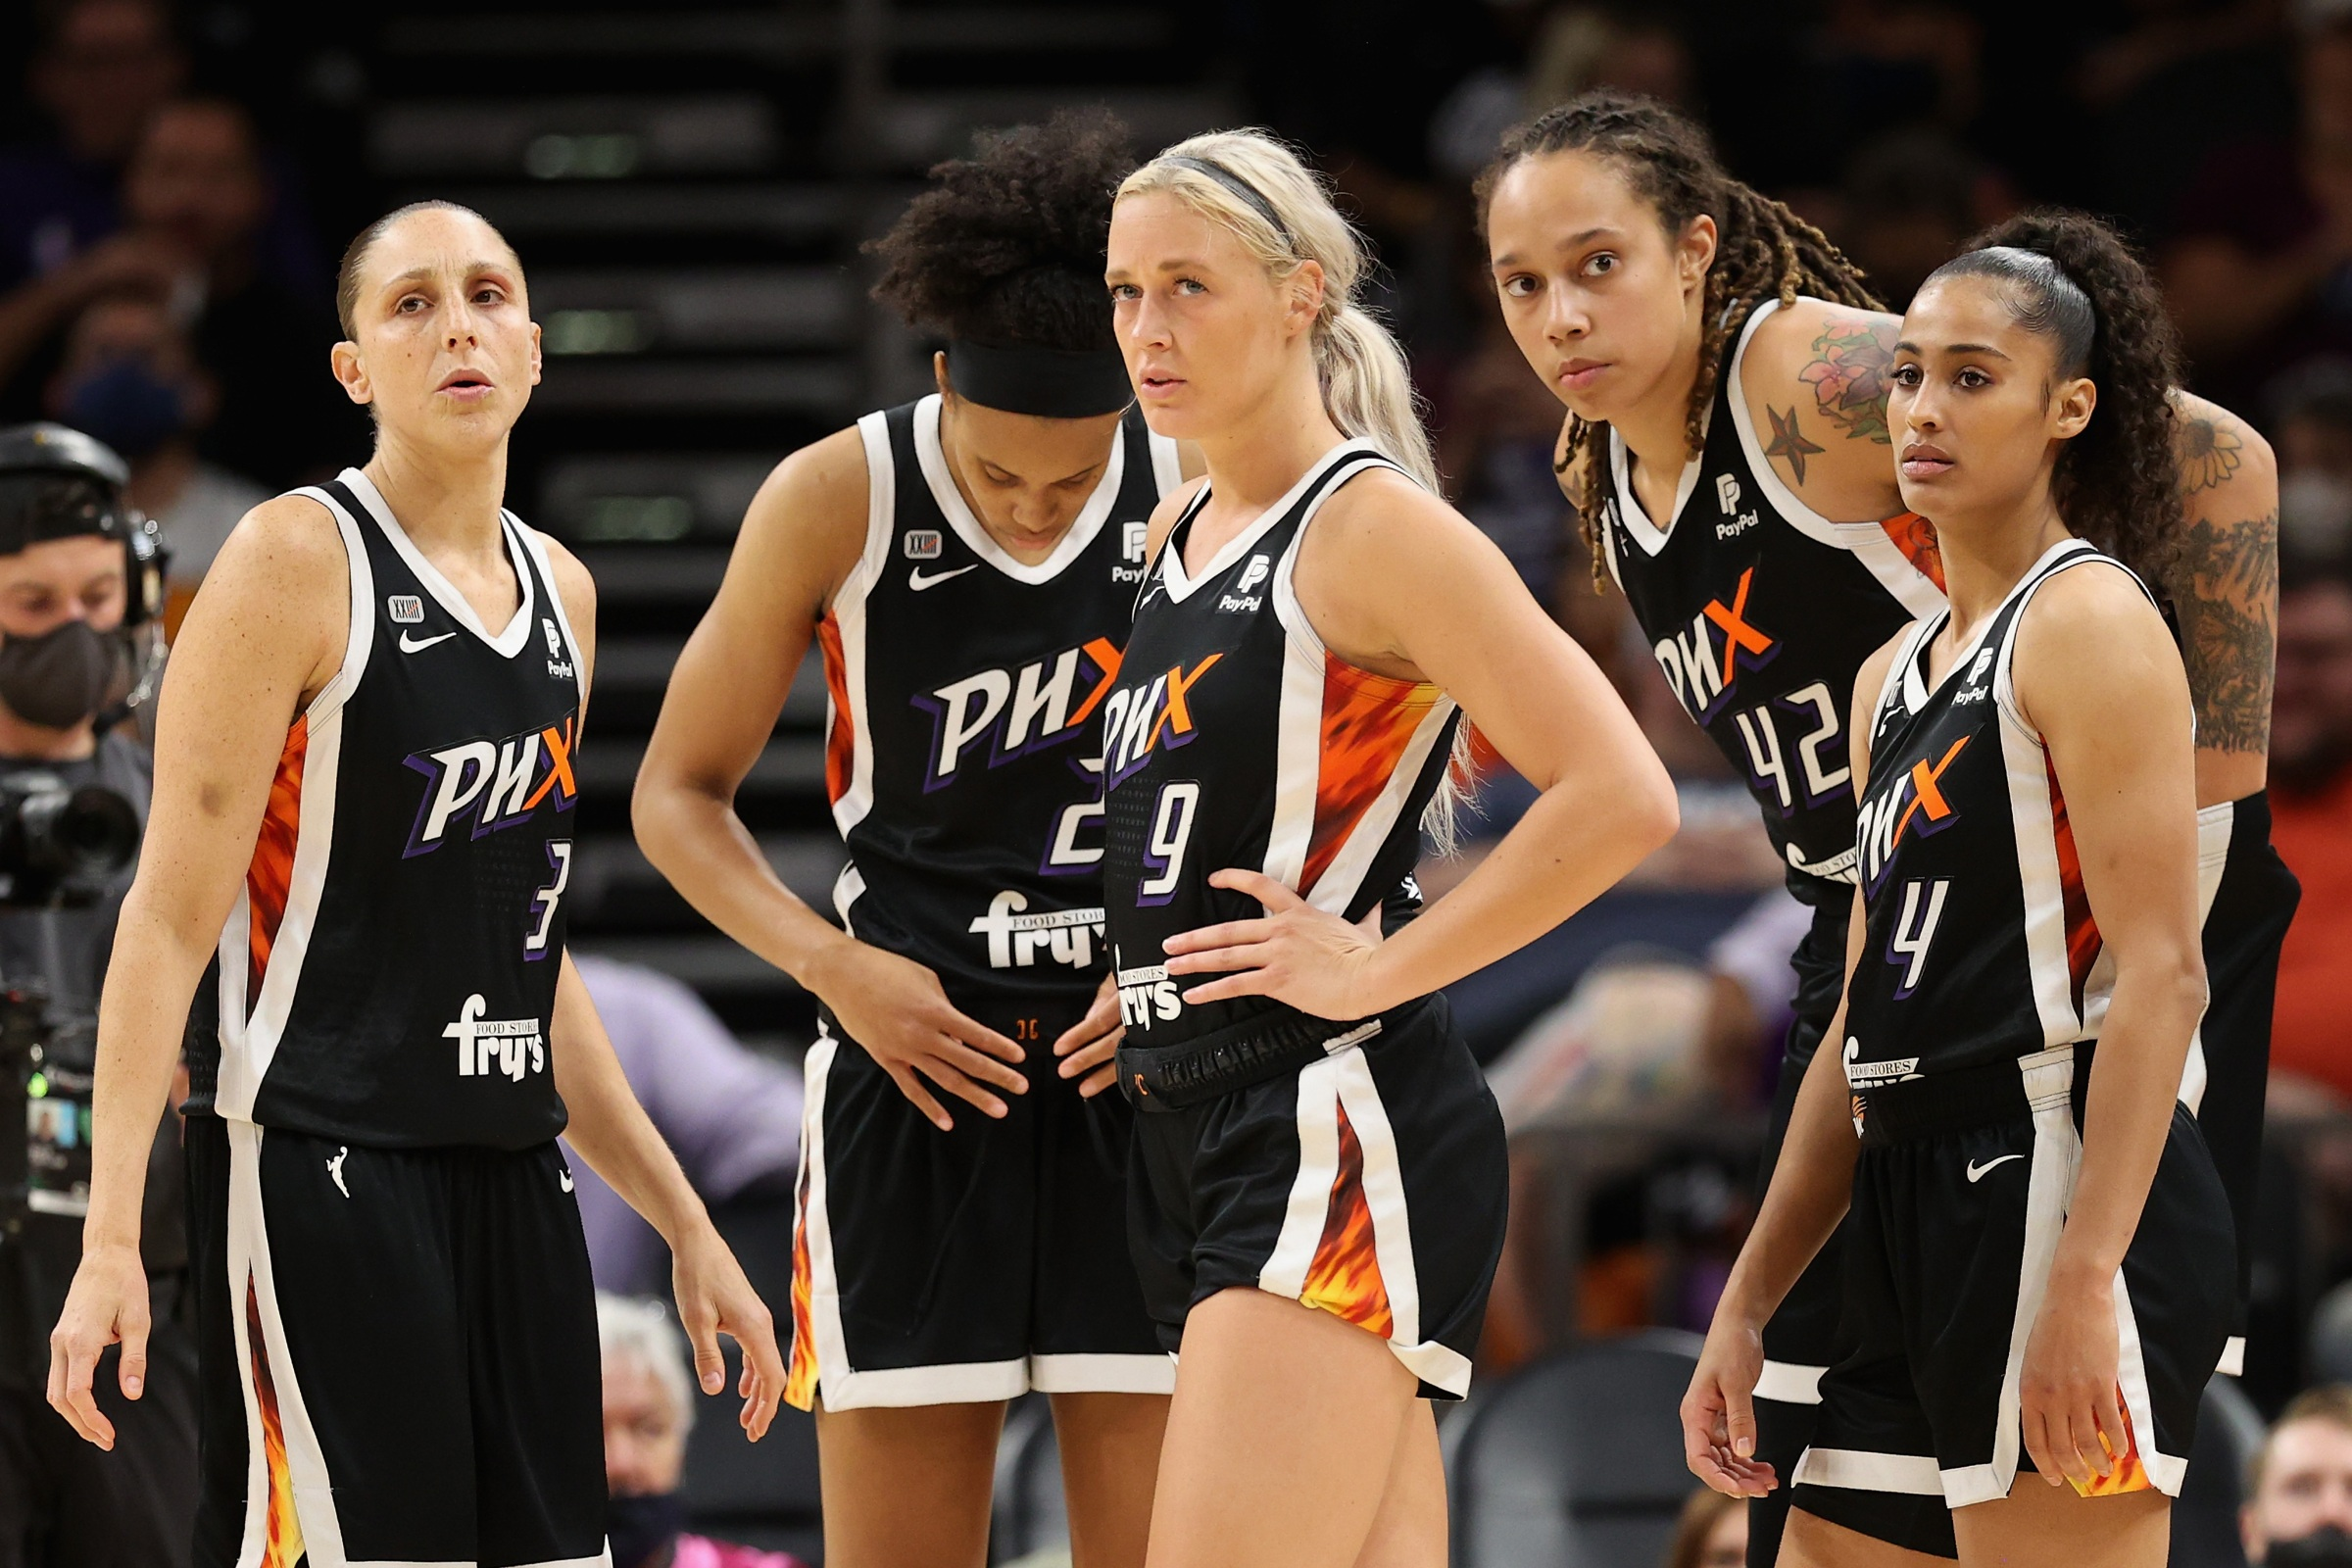 (L-R) Diana Taurasi #3, Brianna Turner #21, Sophie Cunningham #9, Brittney Griner #42 and Skylar Diggins-Smith #4 of the Phoenix Mercury stand on the court during the second half in Game Two of the 2021 WNBA Finals against the Chicago Sky at Footprint Center on October 13, 2021 in Phoenix, Arizona. The Mercury defeated the Sky 91-86 in overtime.